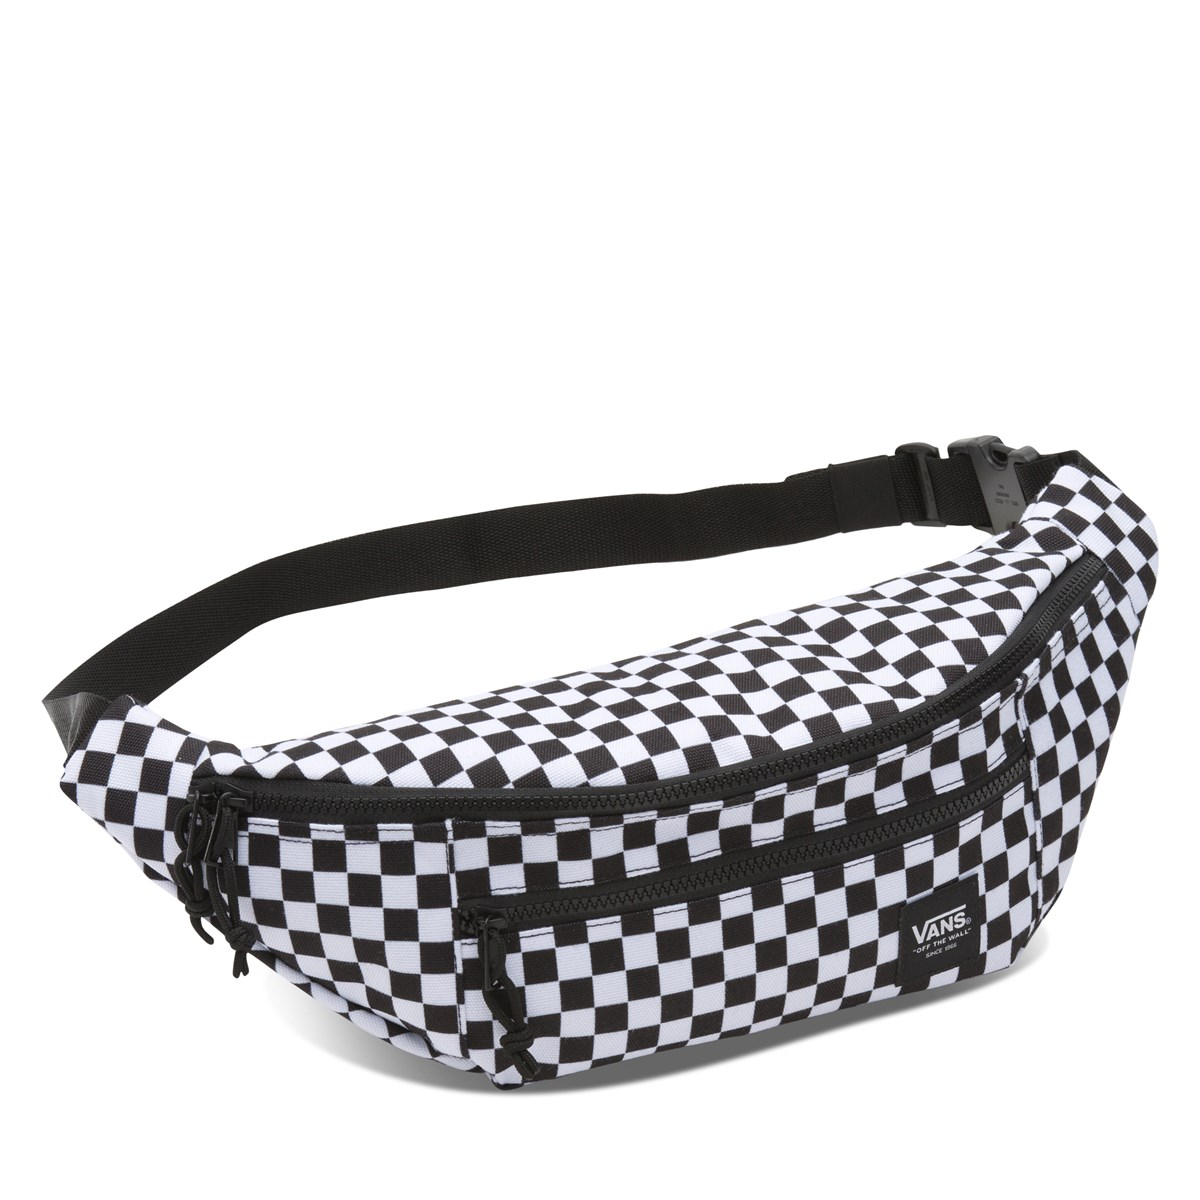 Ranger Waist Pack in Checkerboard